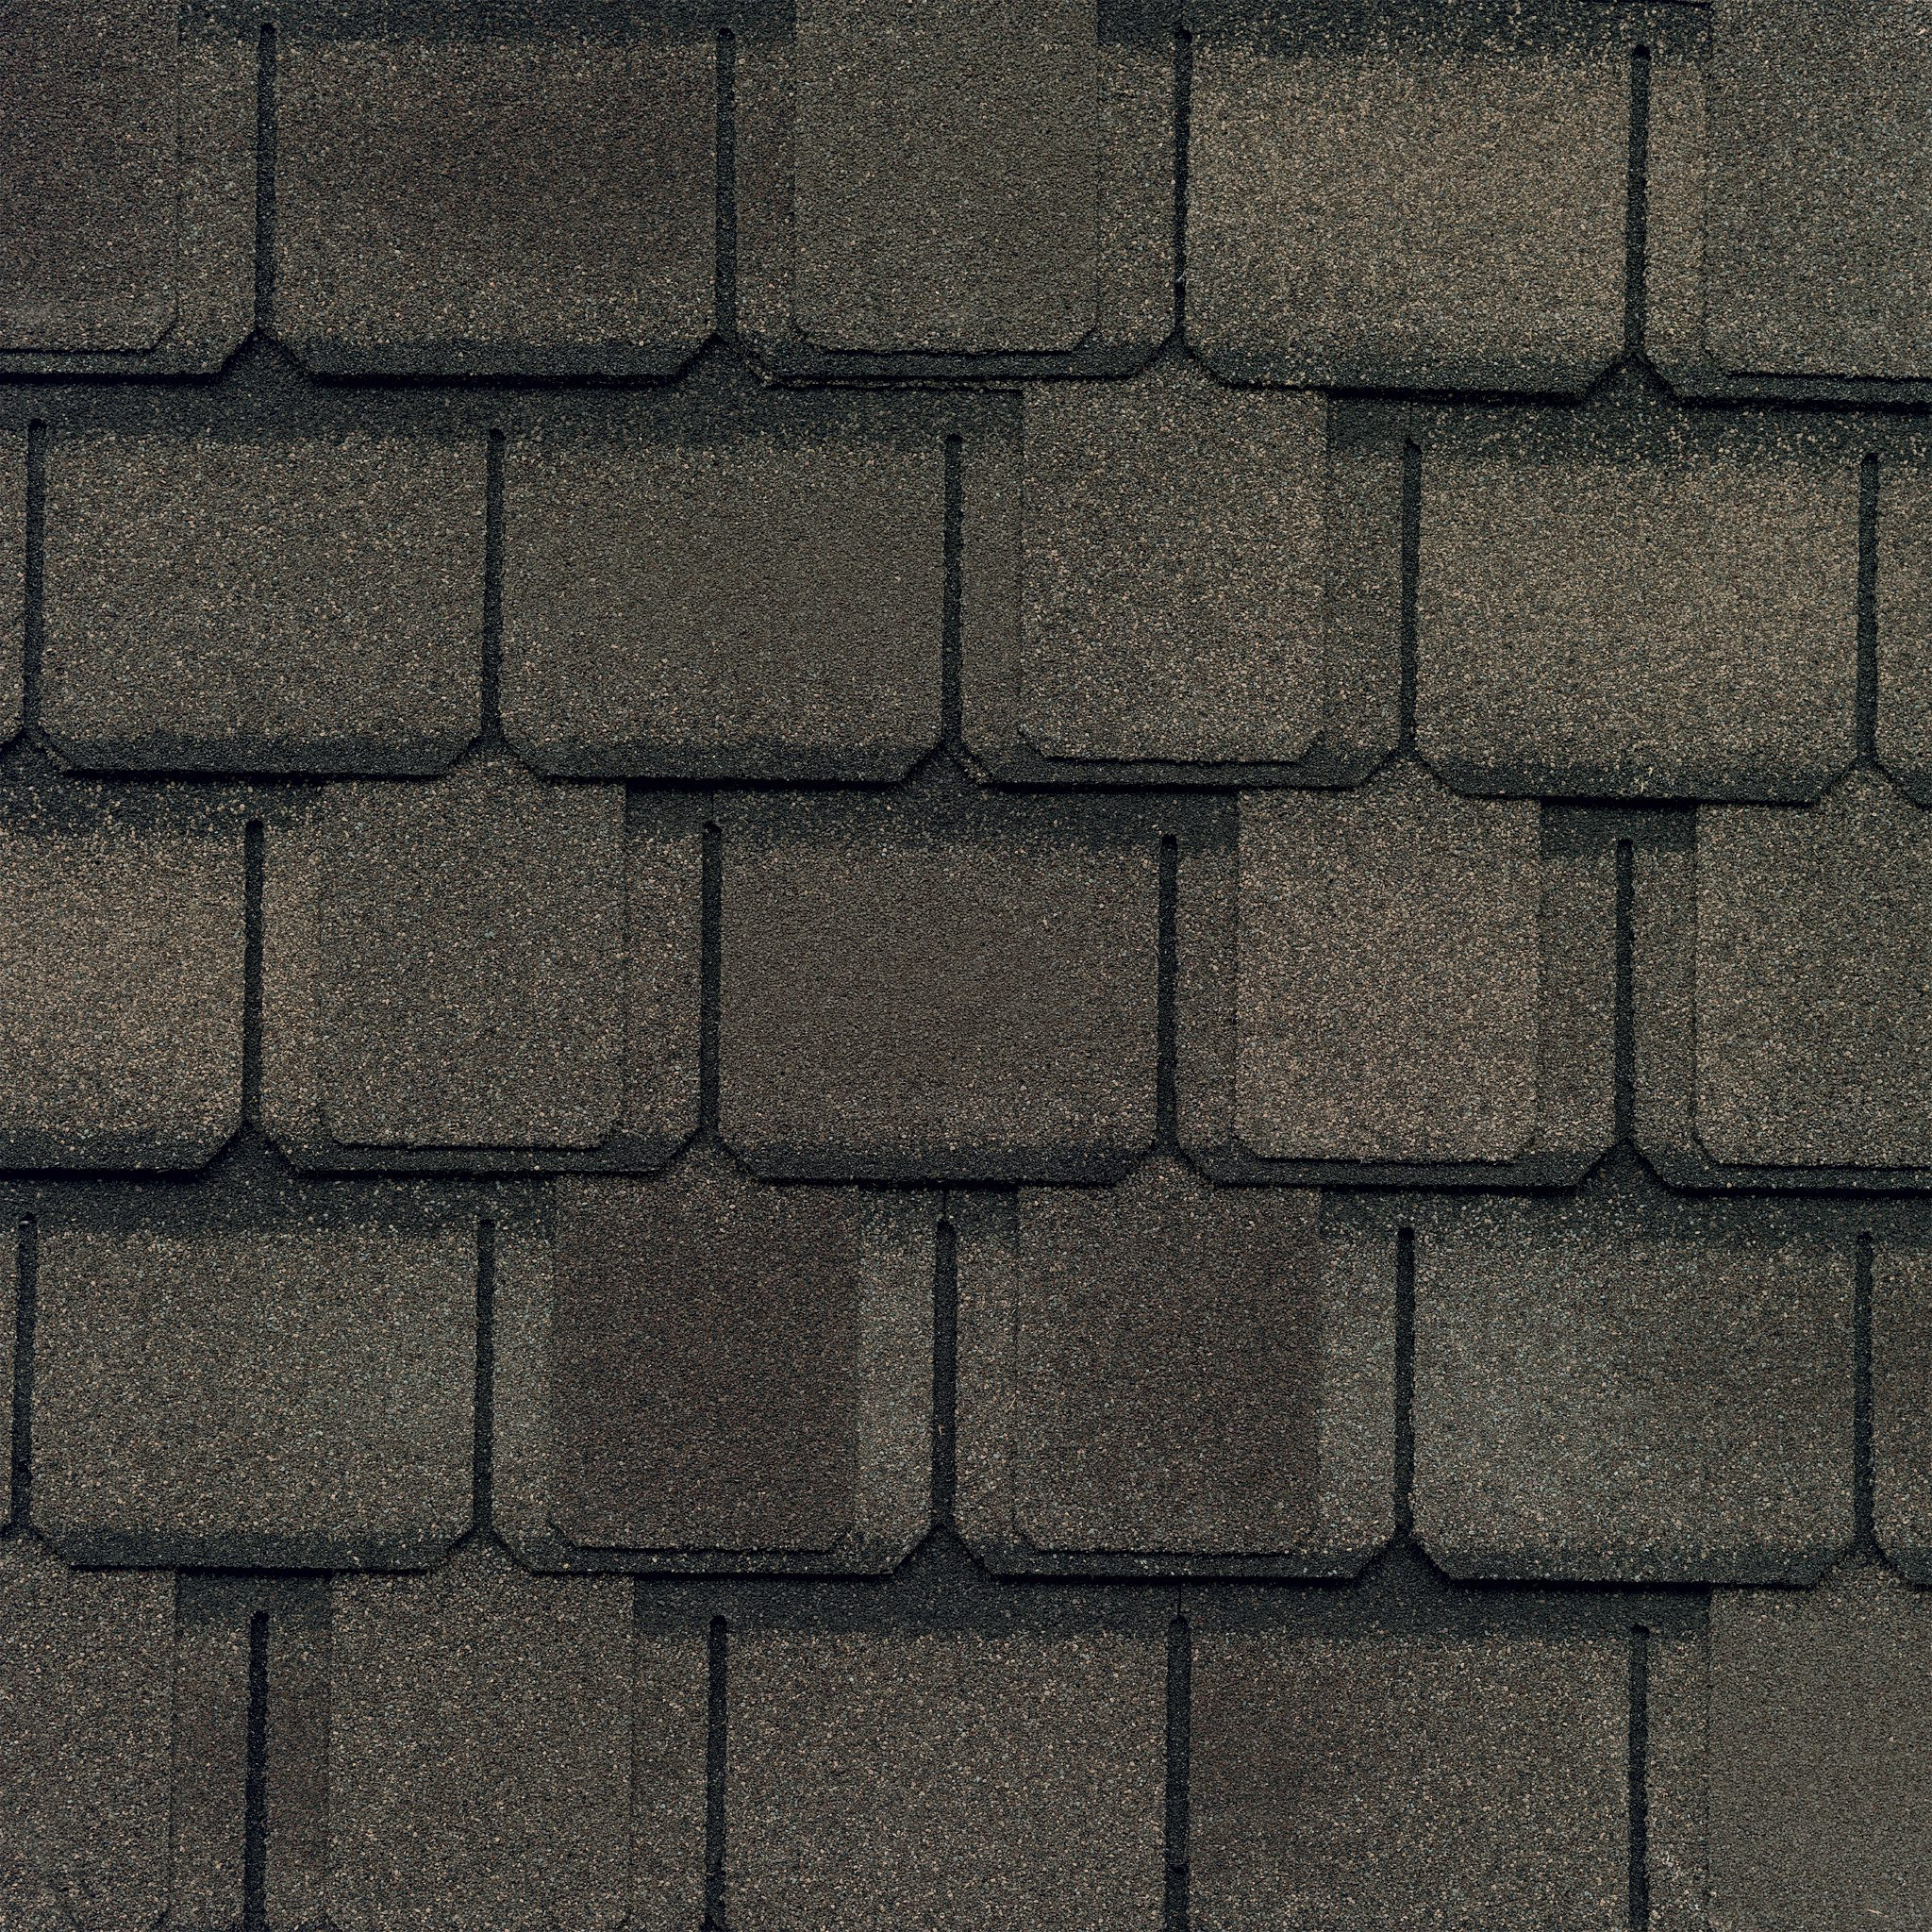 Close-up photo of GAF's Camelot II Weathered Wood shingle swatch